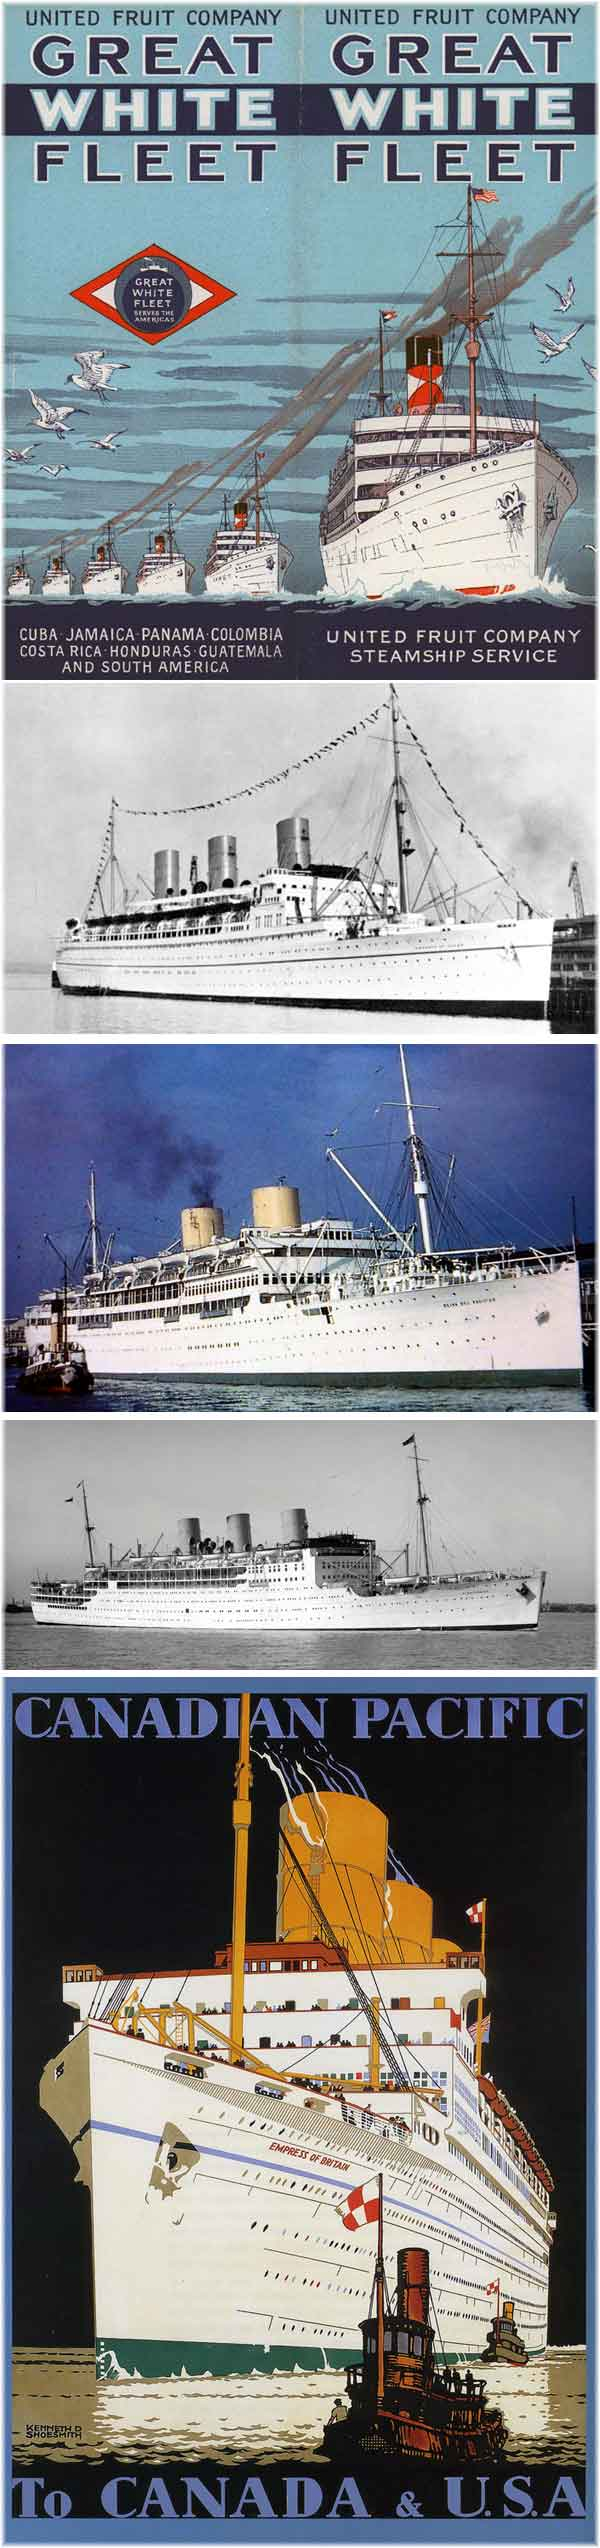 From the top: 1) Great White Fleet 1926 (Prior to 1930 only banana boats had worn white in large numbers - courtesy Bjoern Larsson) 2) Empress of Japan ( White hull 1930, used Leigh's Marine White at Pier BC Vancouver, now Canada Place 3) Reina del Pacifico (White hull 1931: a first-time customer of Leigh's Marine White. Seen here at Liverpool 4) Strathnaver (White hull 1931: the first P&O ship to appear in white 5)Empress of Britain (White hull 1931. The largest white-hulled ship until P&O's Canberra in 1961